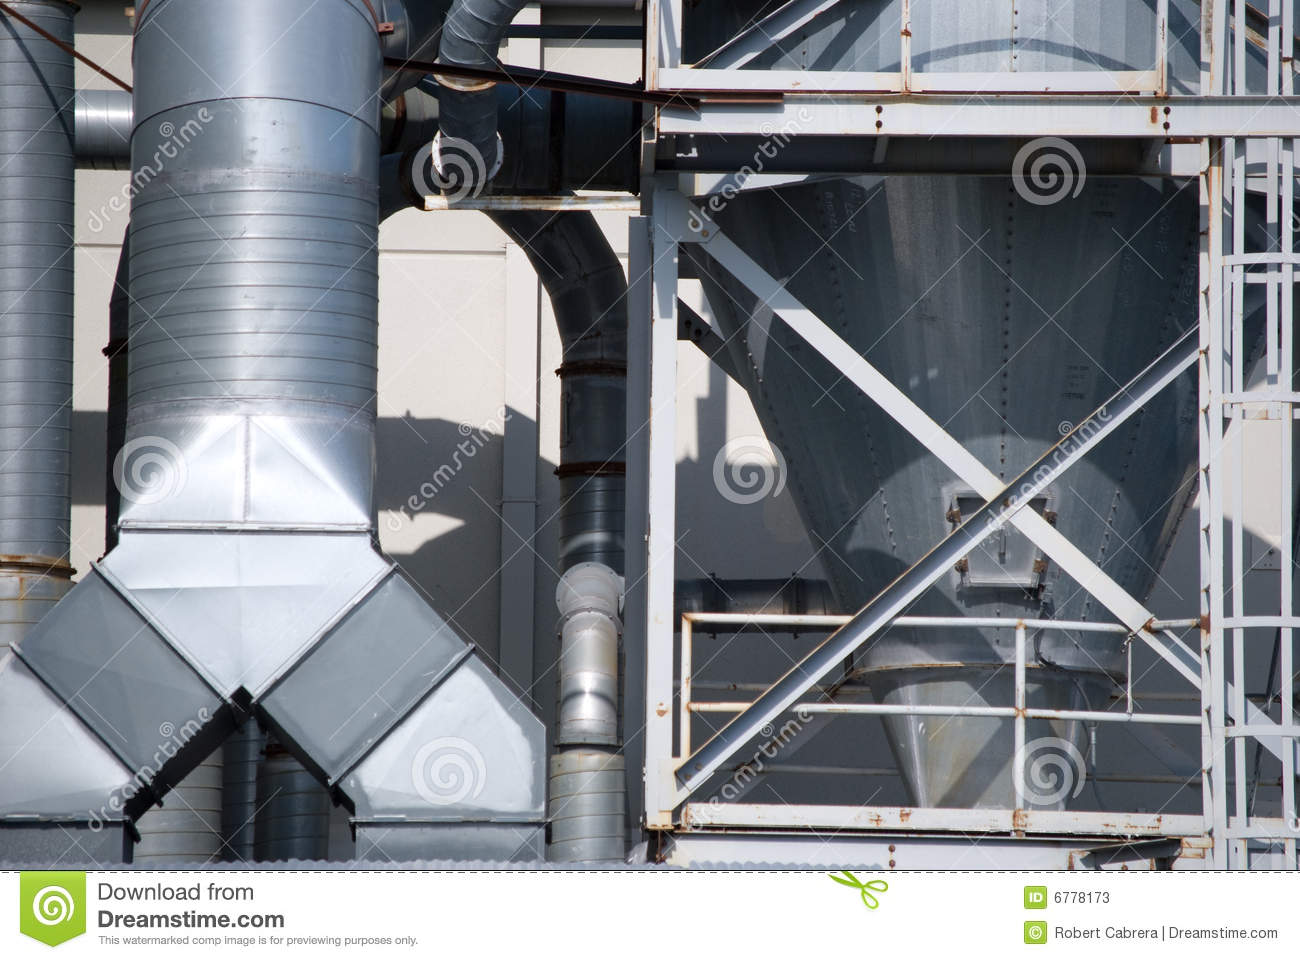 Industrial Air Conditioner Duct Work Stock Photos Image: 6778173 #7C814A